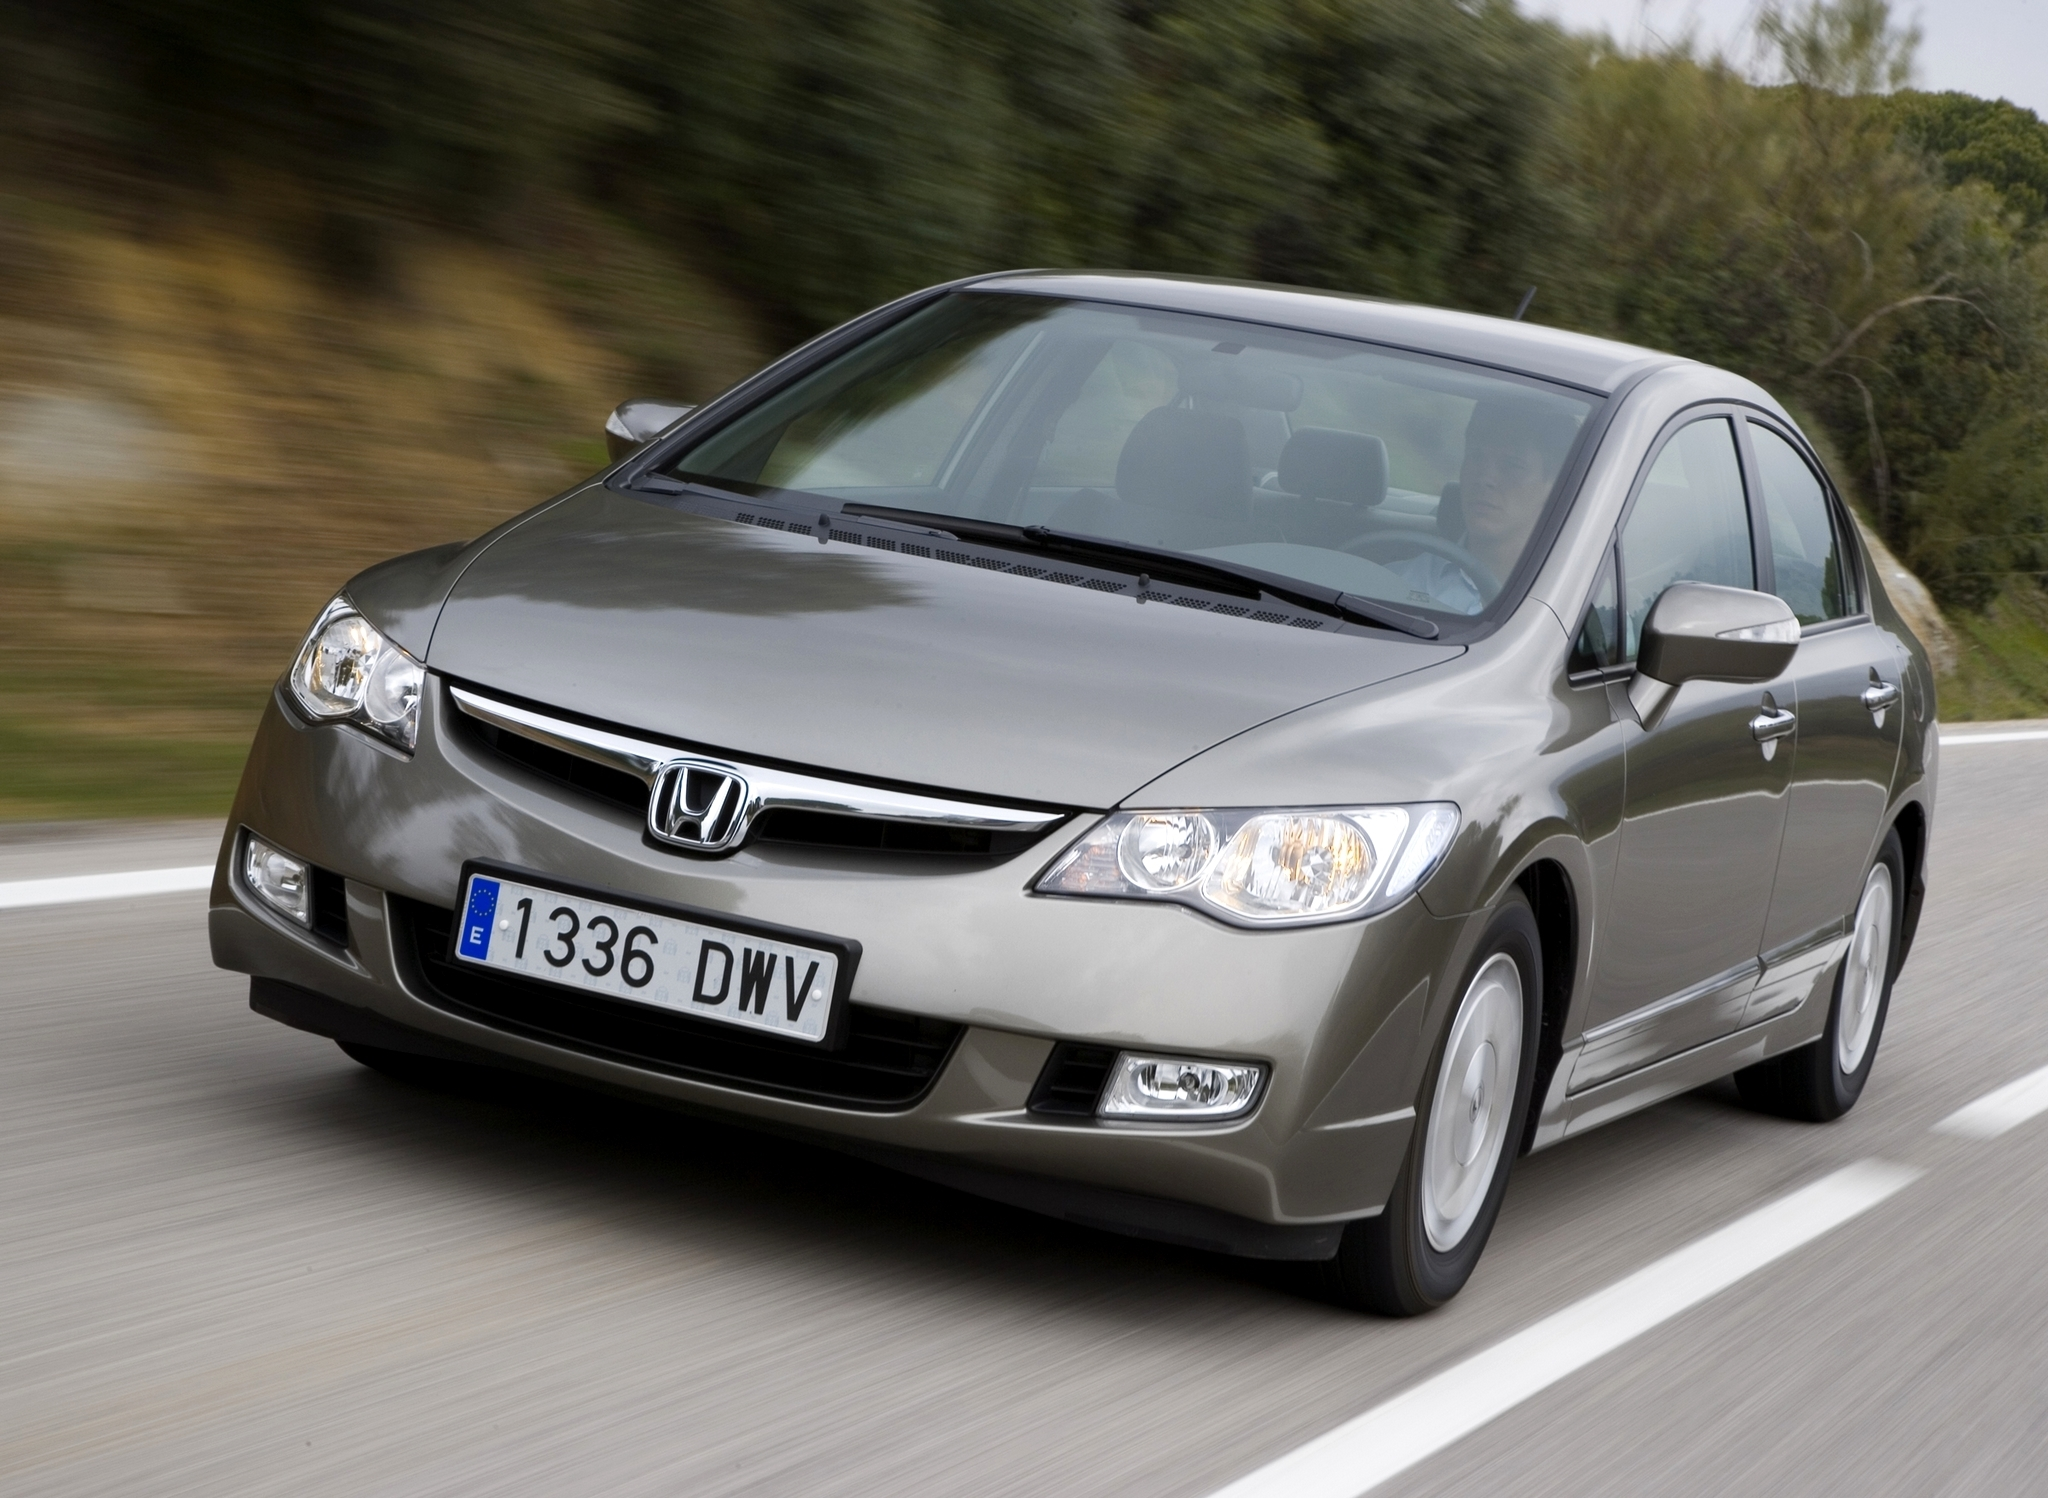 Exceptional Honda Civic Hybrid 2010 Exterior Front End